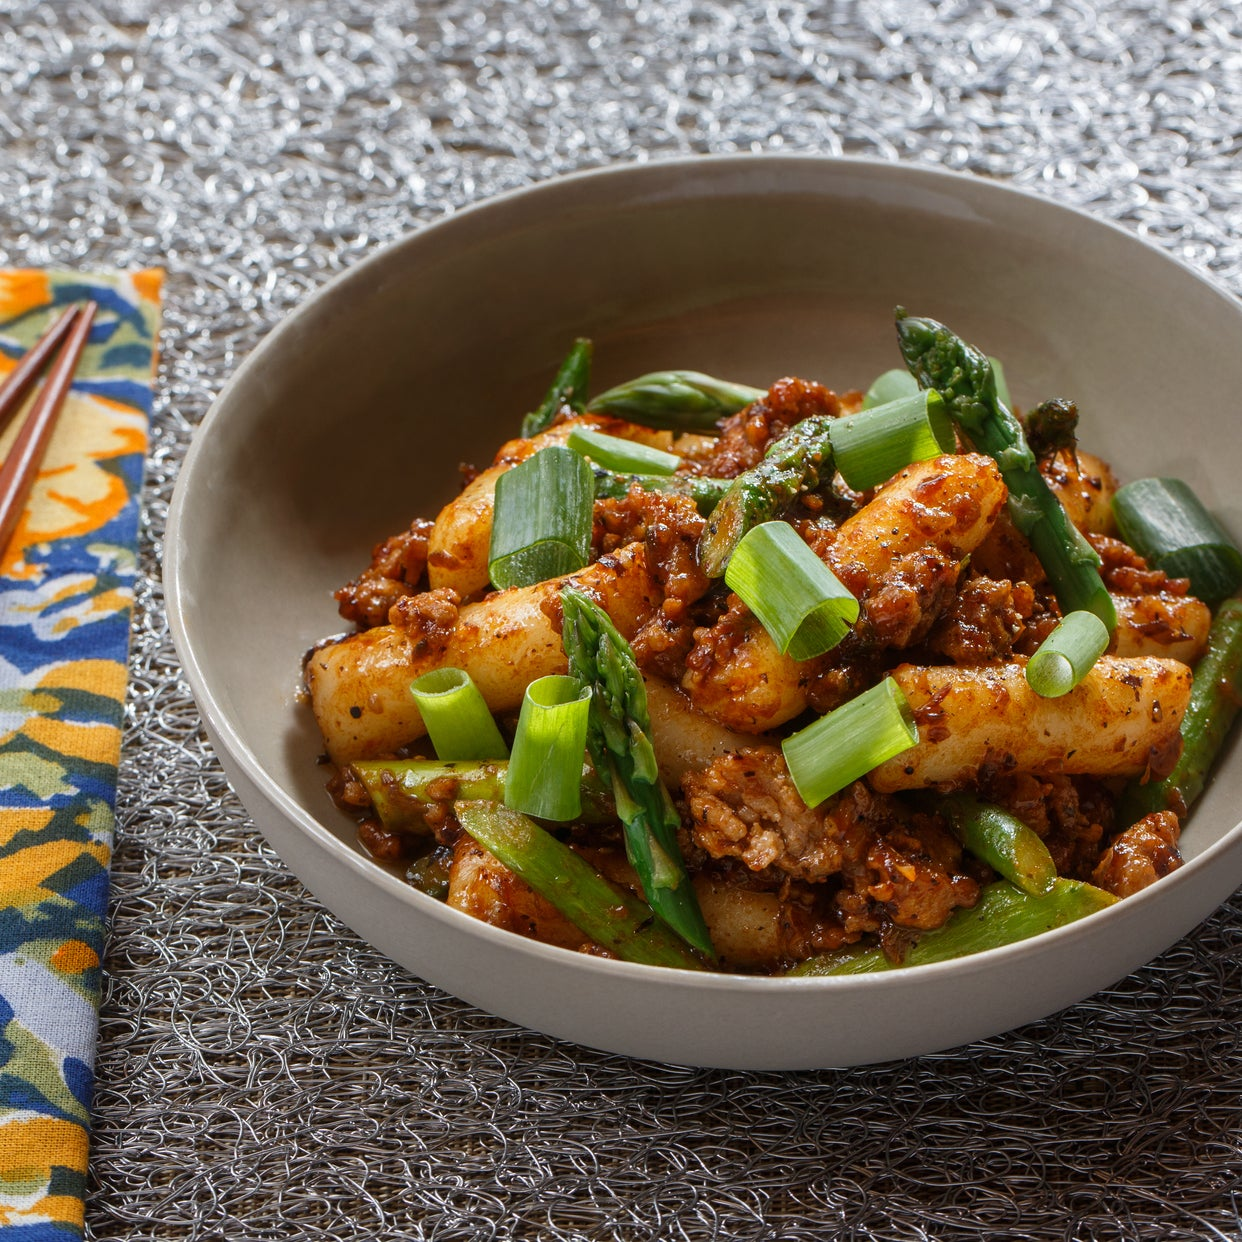 Pork Tteokbokki with Asparagus & Spicy Black Bean Sauce